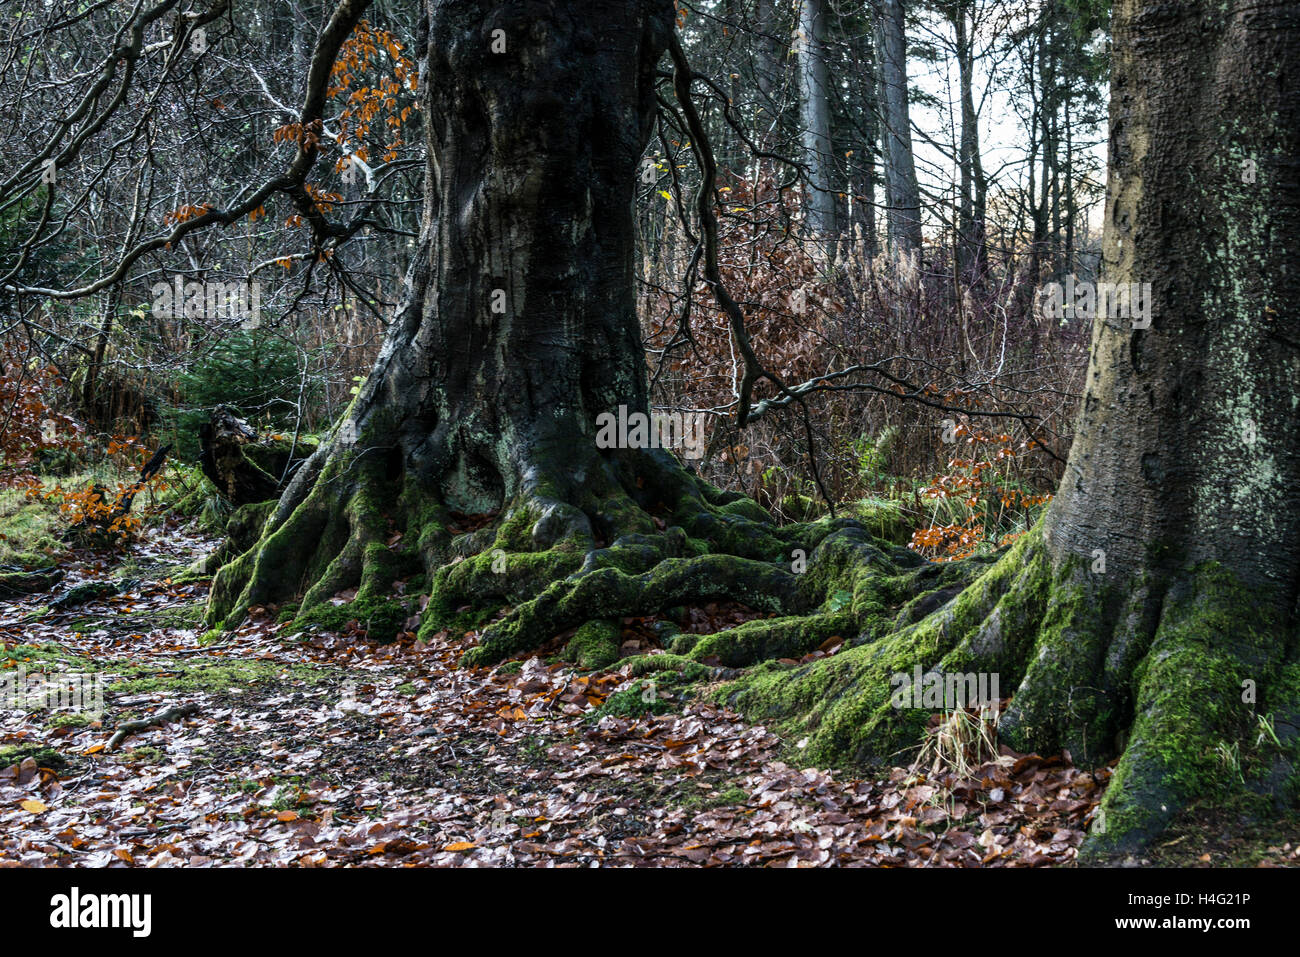 Knotted, gnarled tree roots - Stock Image